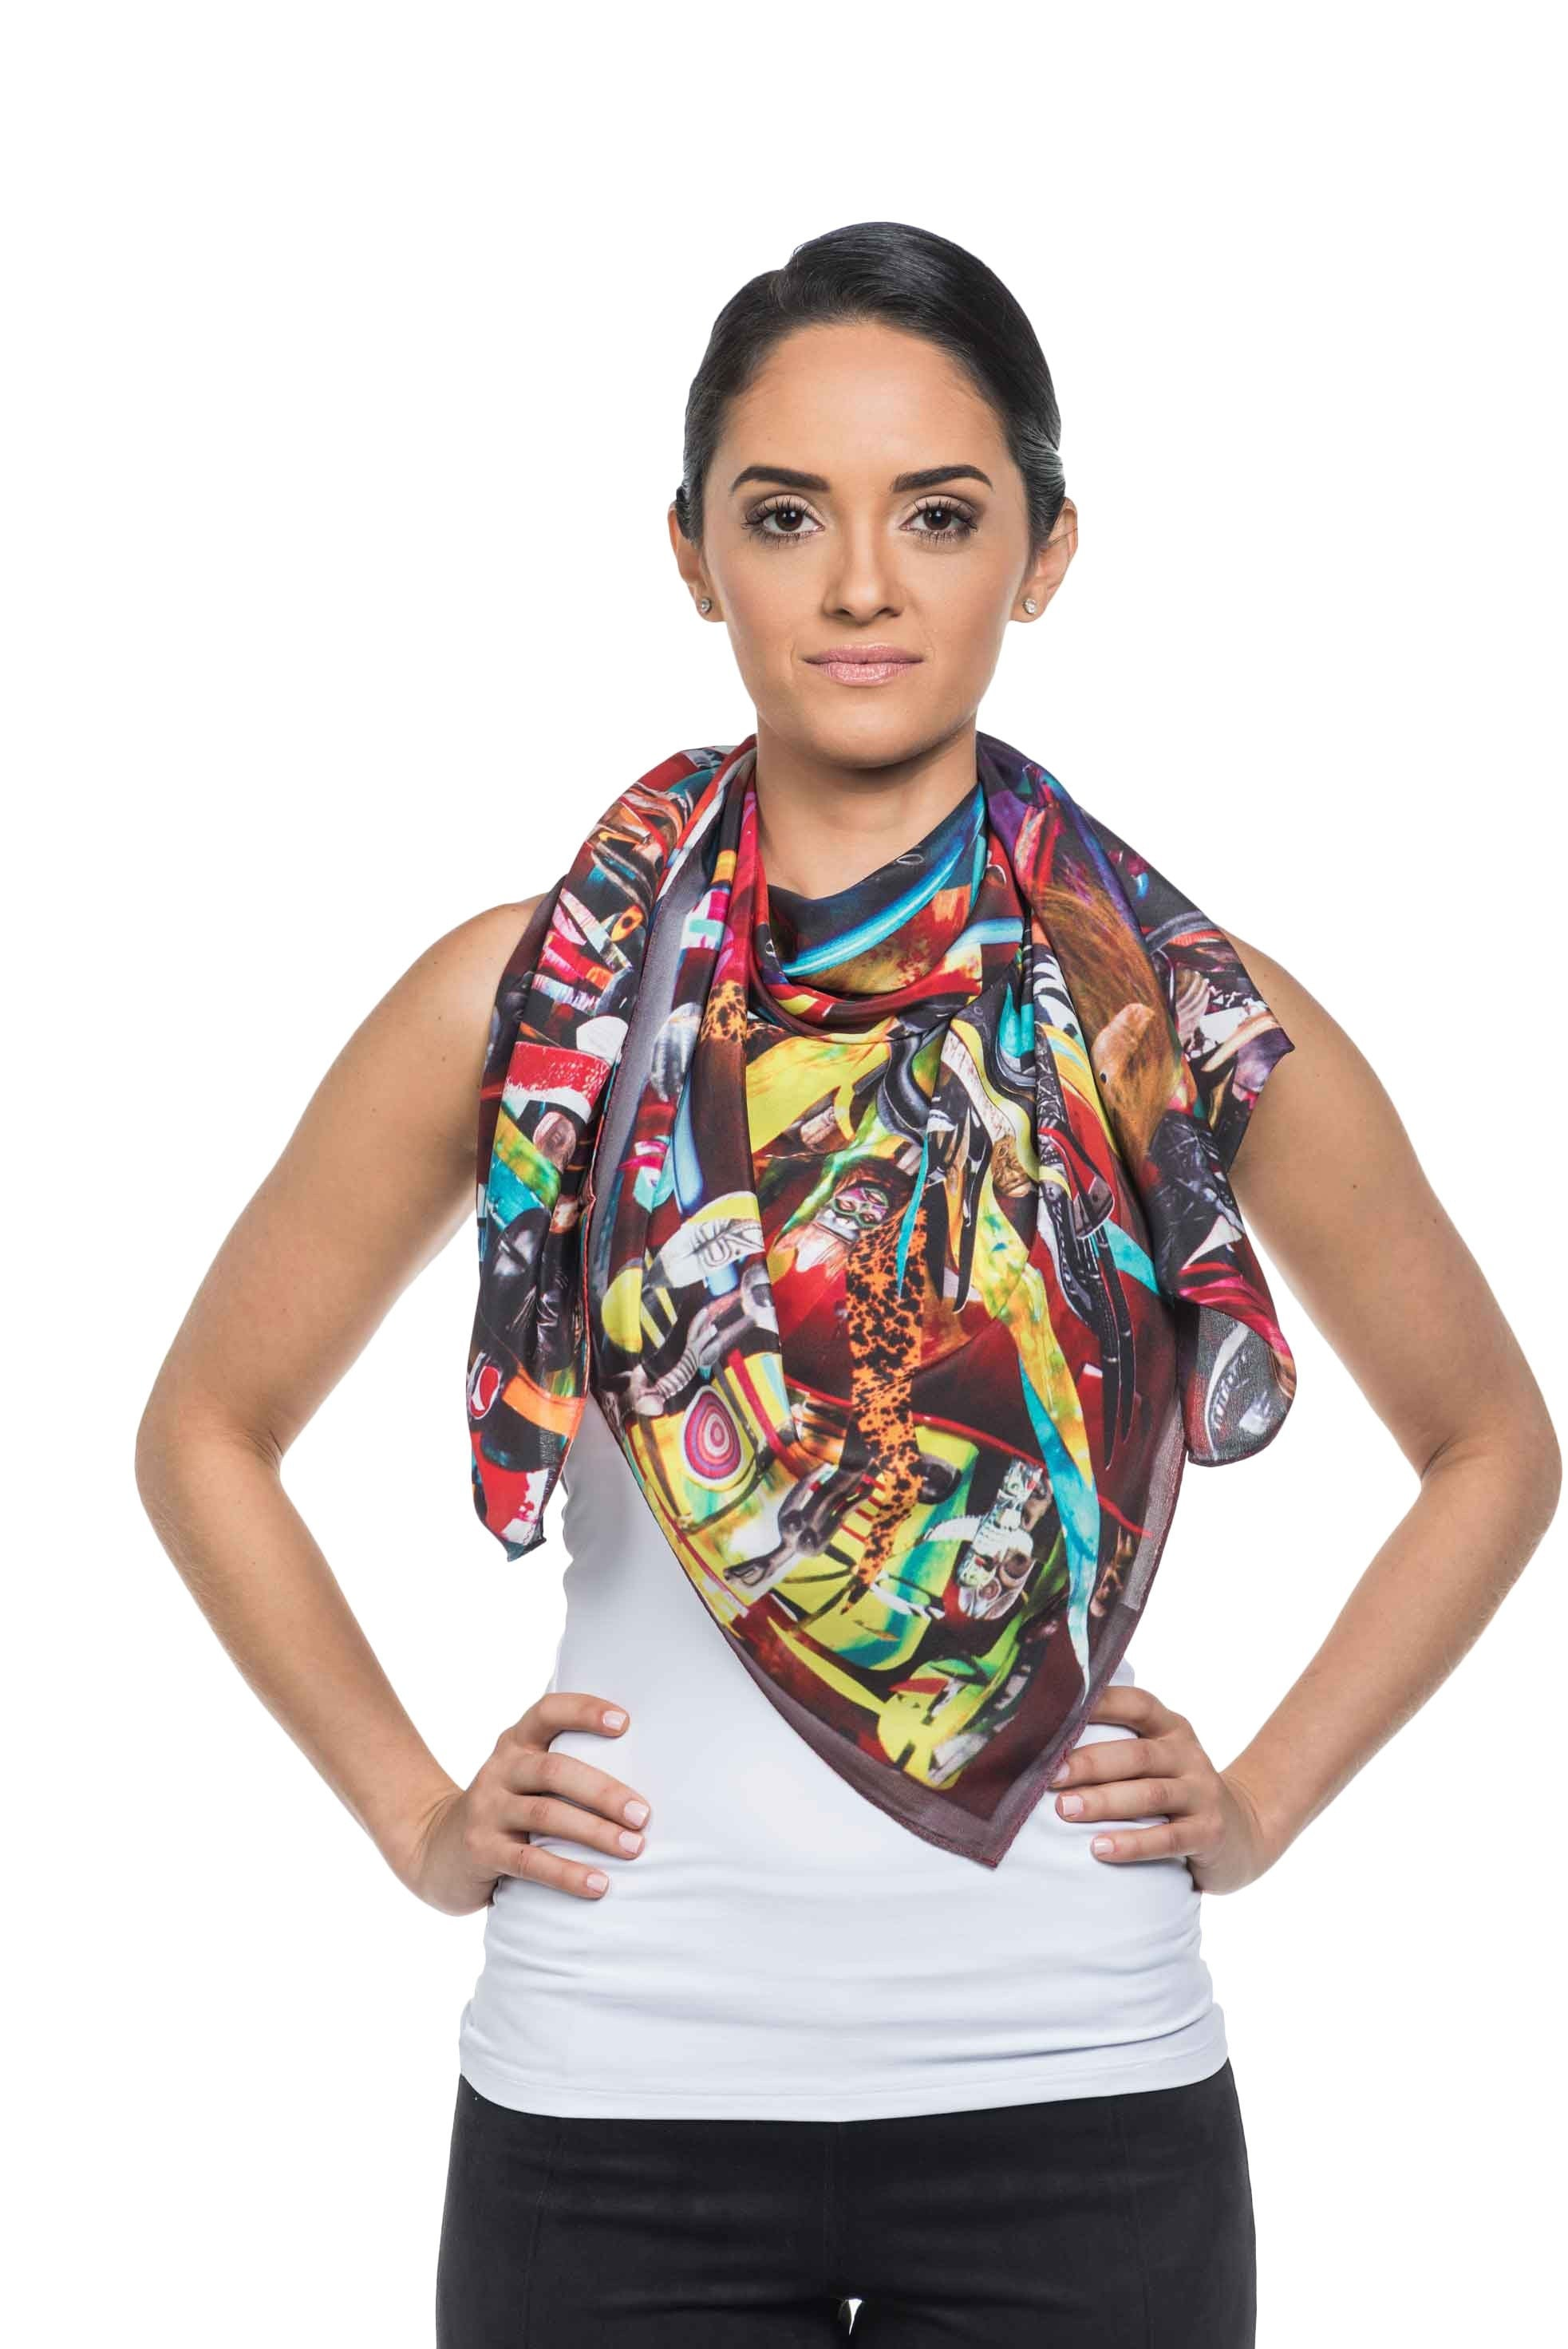 Magnificent 100% silk uniquely designed scarf in multi-colored shades. This wearable art piece is based on an eclectic collection of objects.